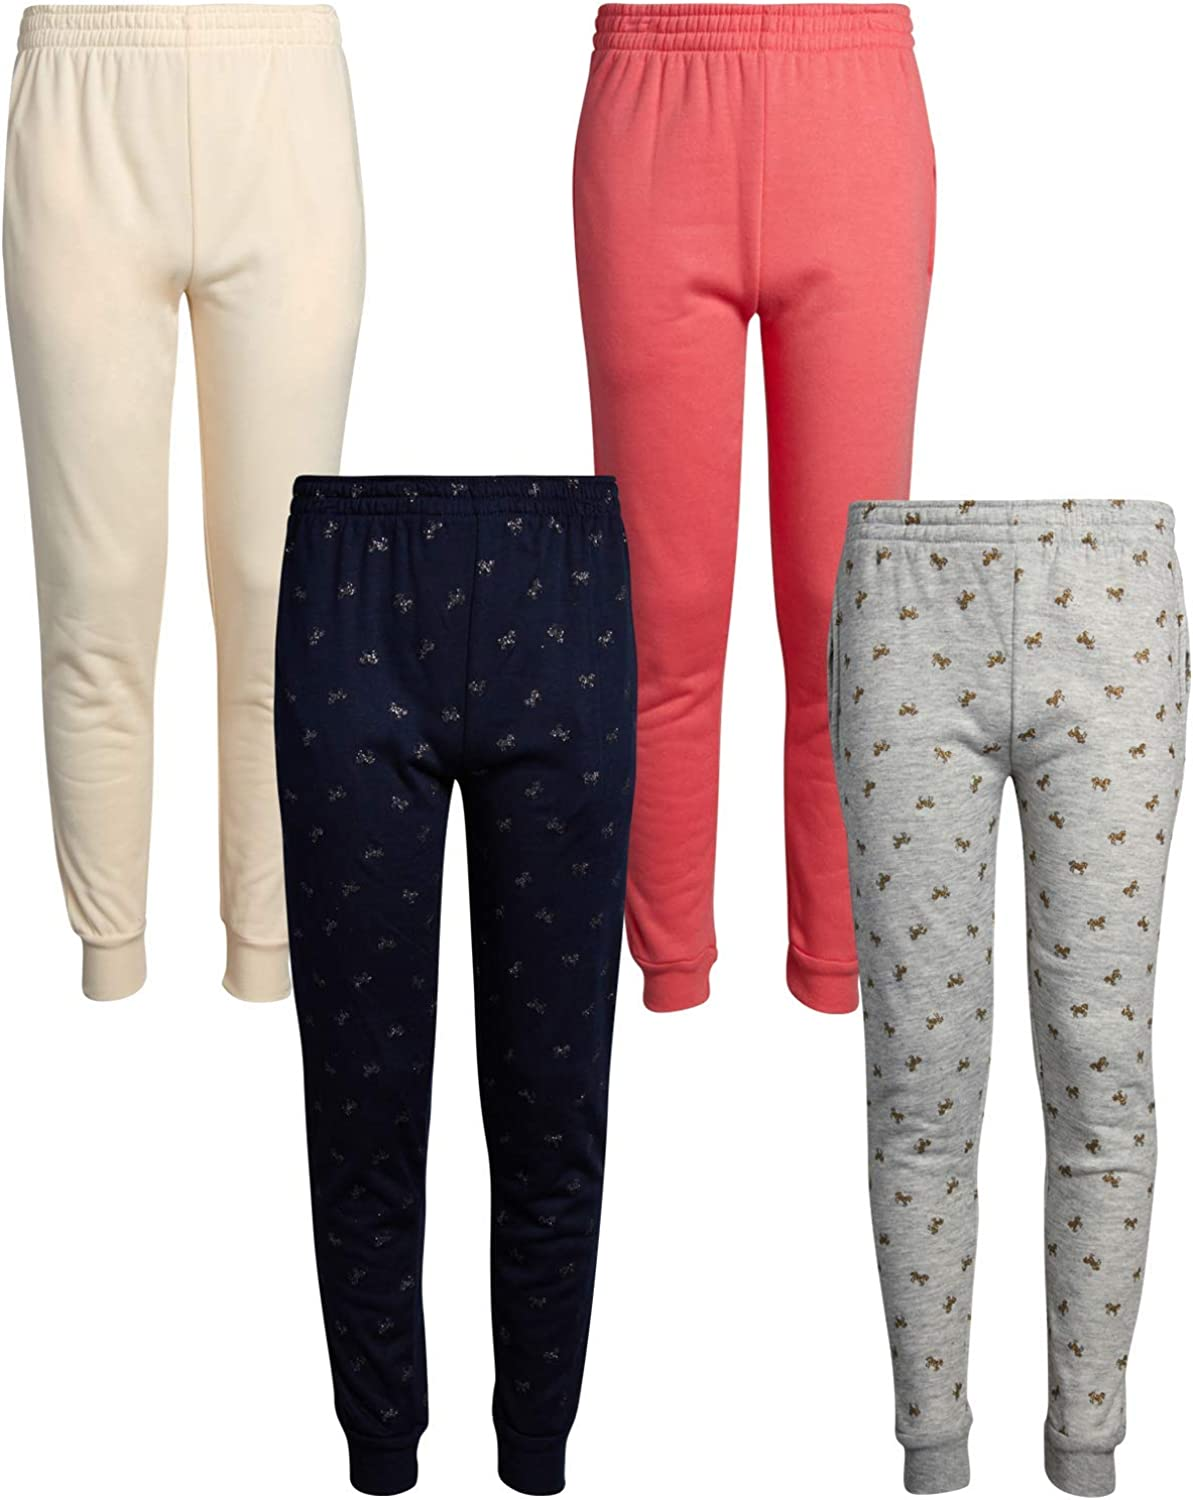 Real Love Girls Fleece Jogger Sweatpants with Pockets (4 Pack): Clothing